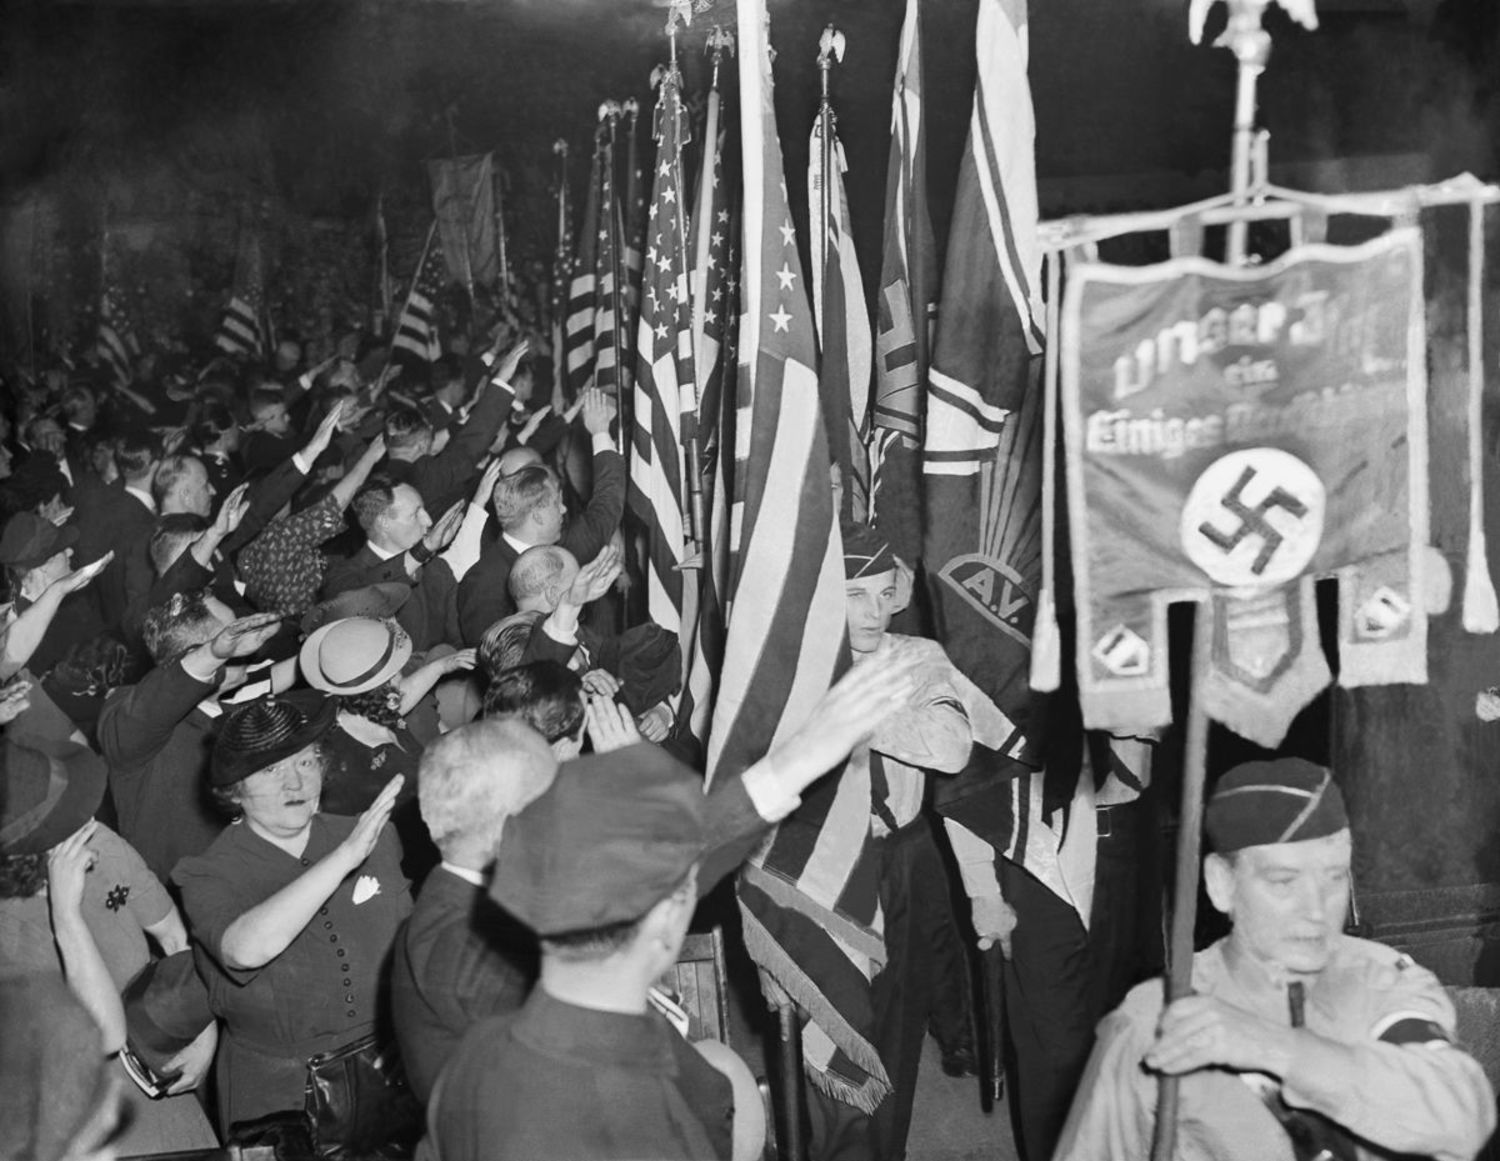 Supporters salute the banner of the German American Bund.